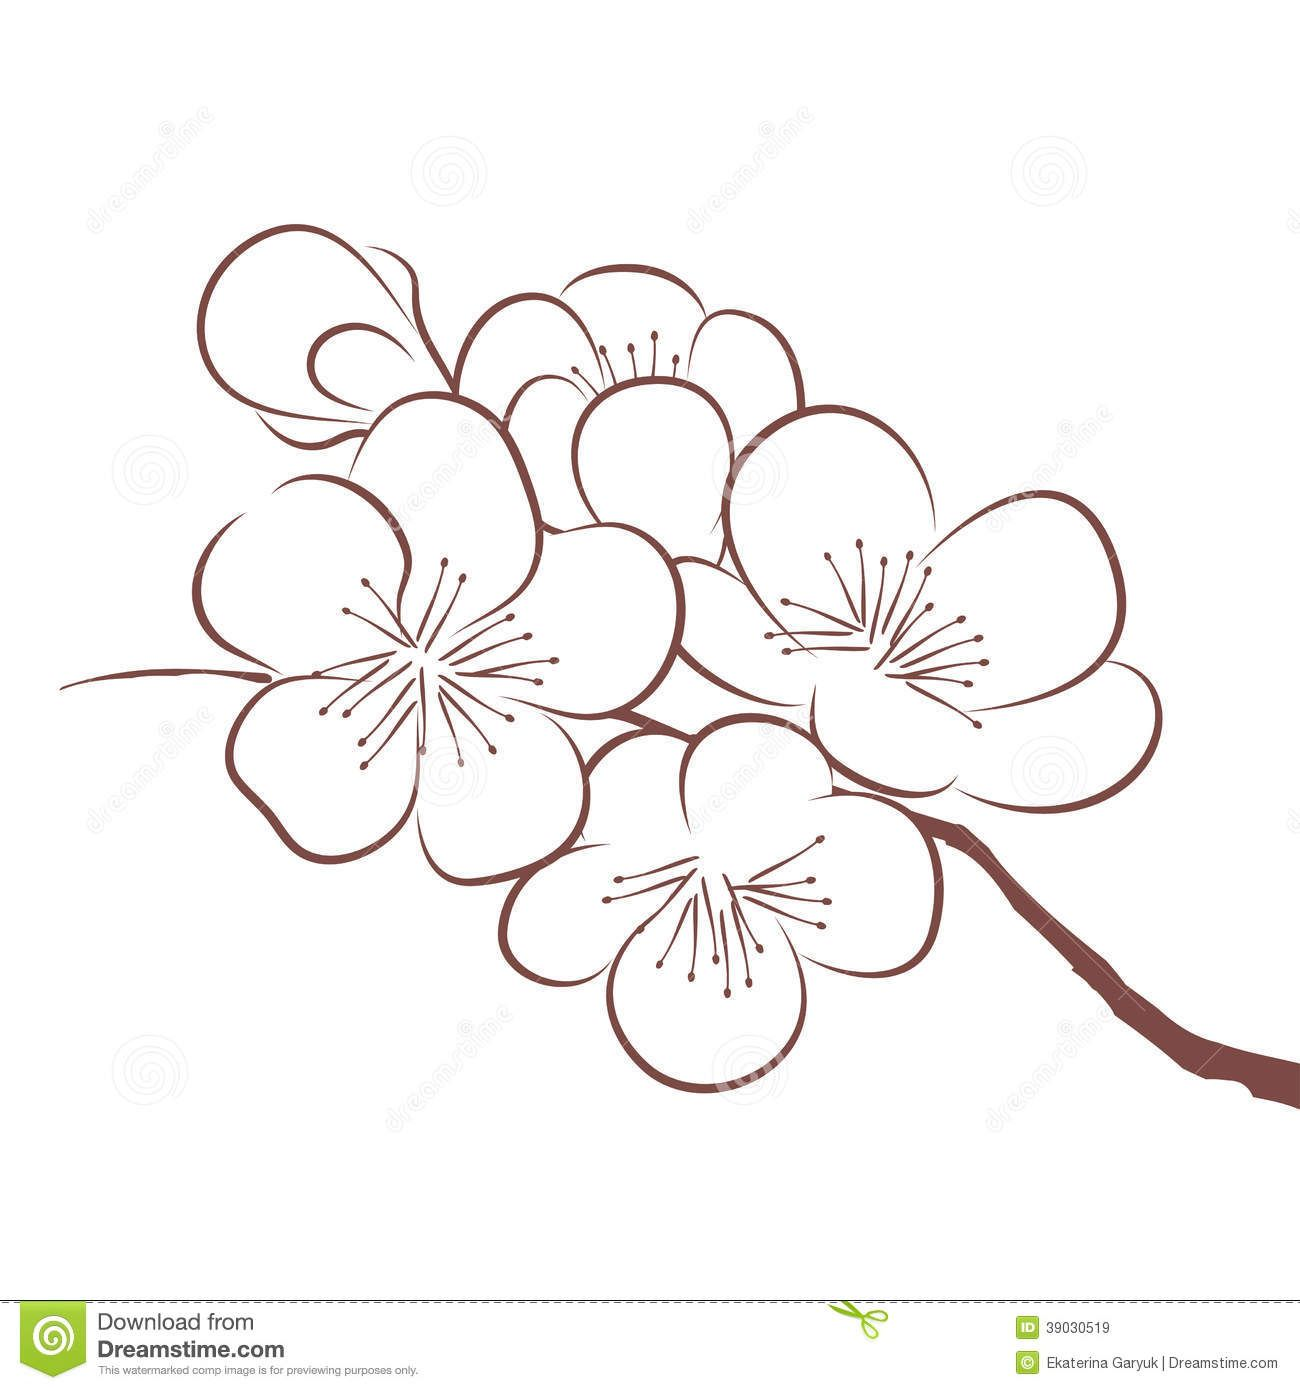 Blossom Flower Line Drawing : Spring cherry blossom blooming tree branch close up